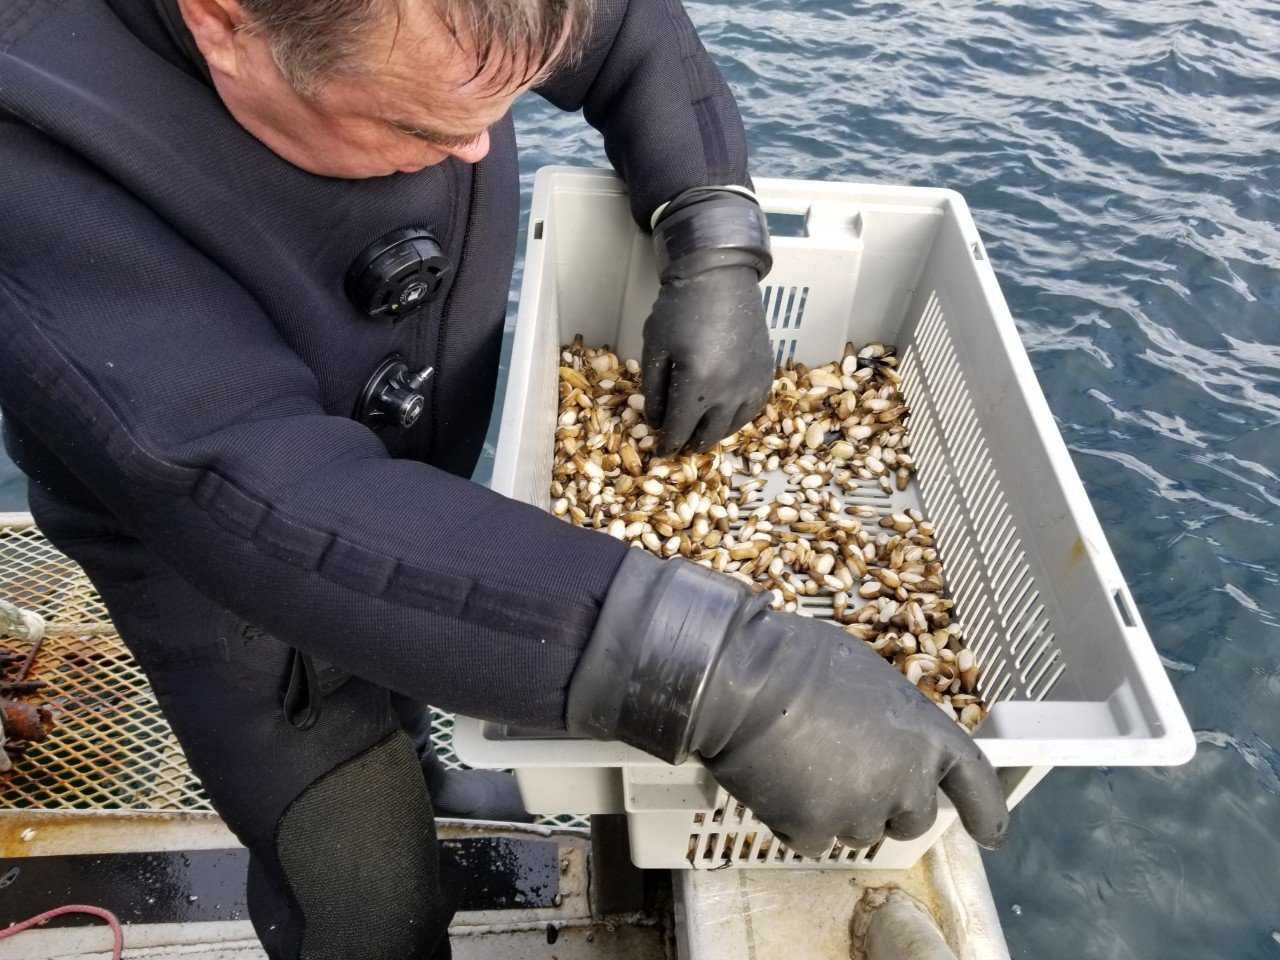 Diver checking Geoduck seeds in a bucket on a boat